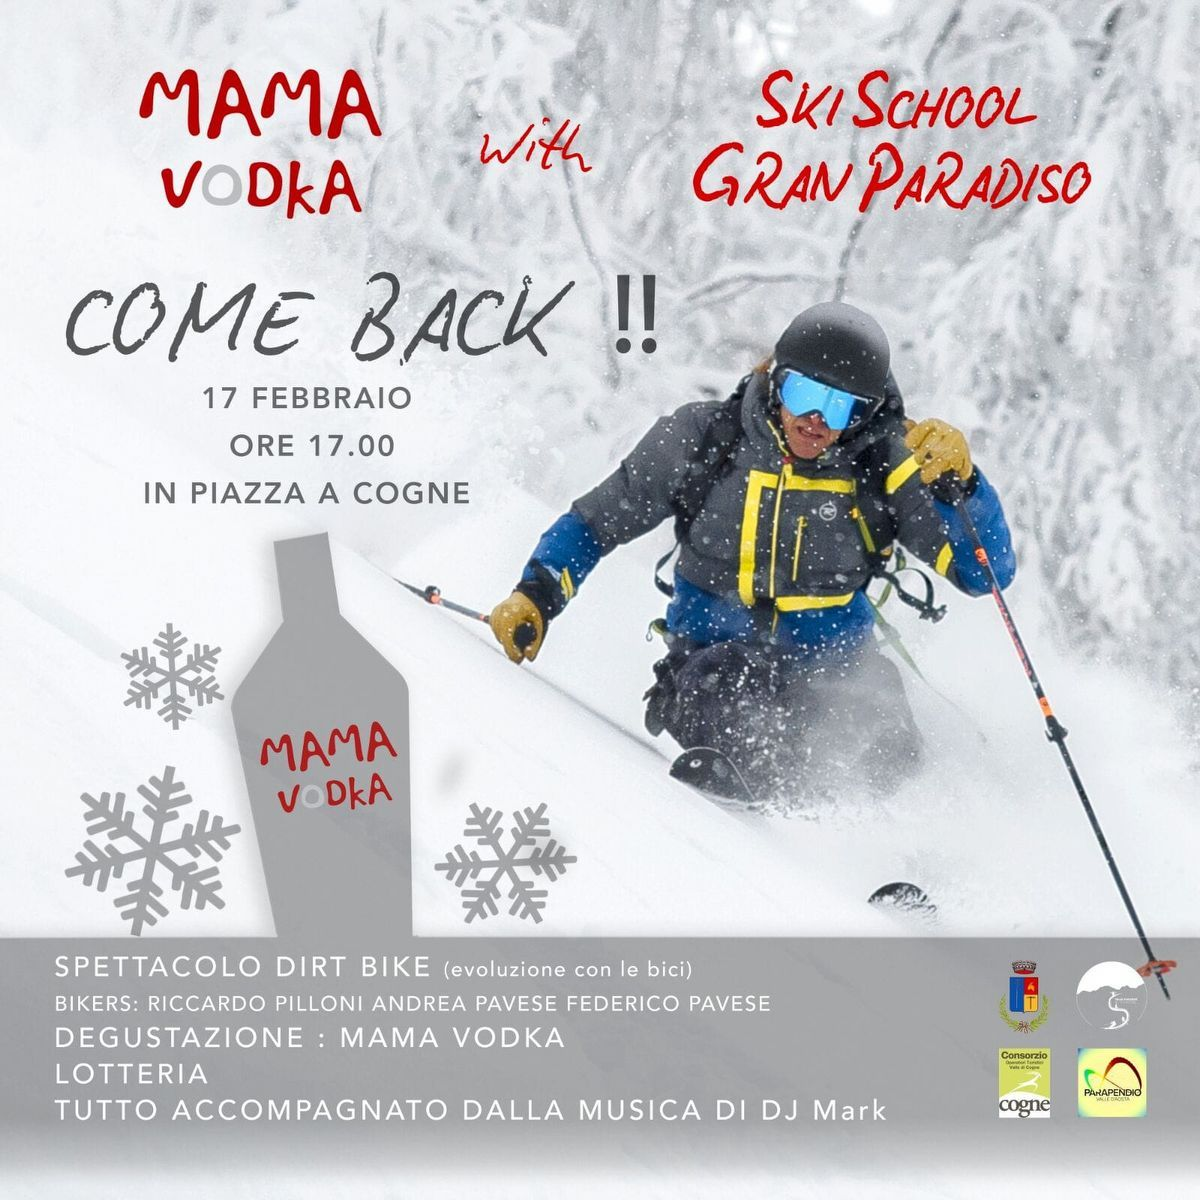 Carnival party - Cogne - Aosta Valley